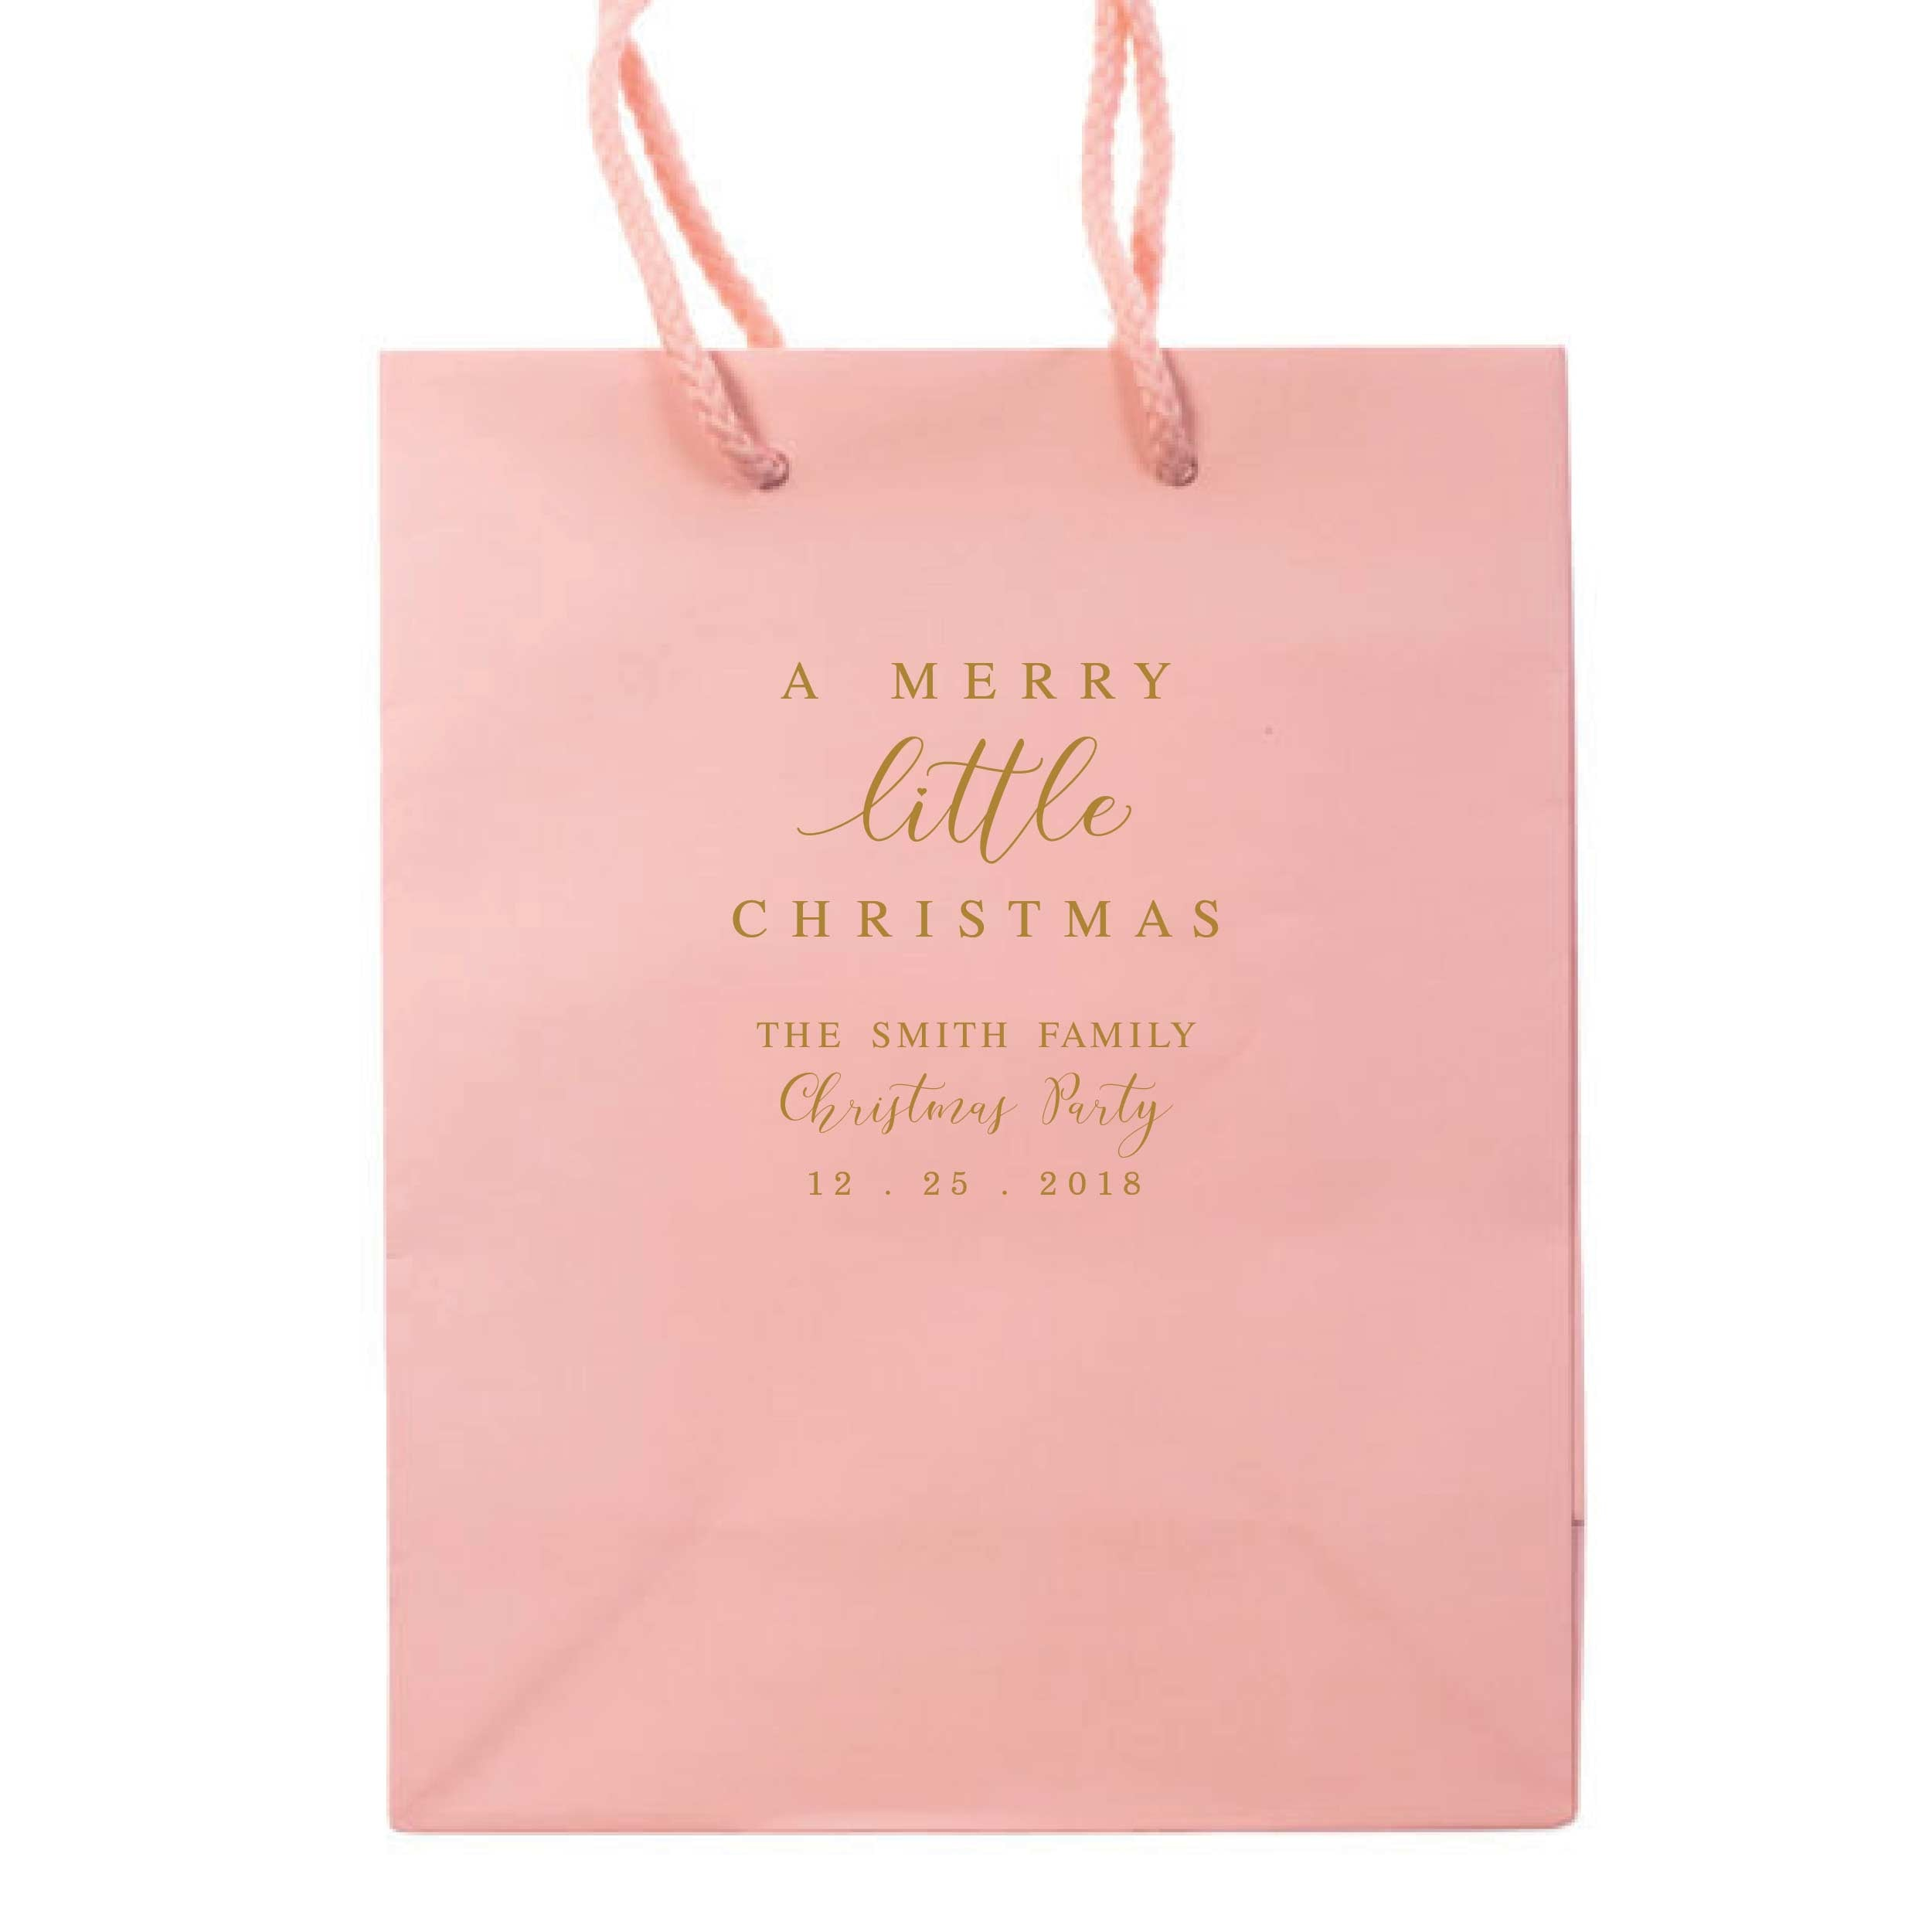 merry little christmas gift bags personalized holiday gift bag tea and becky